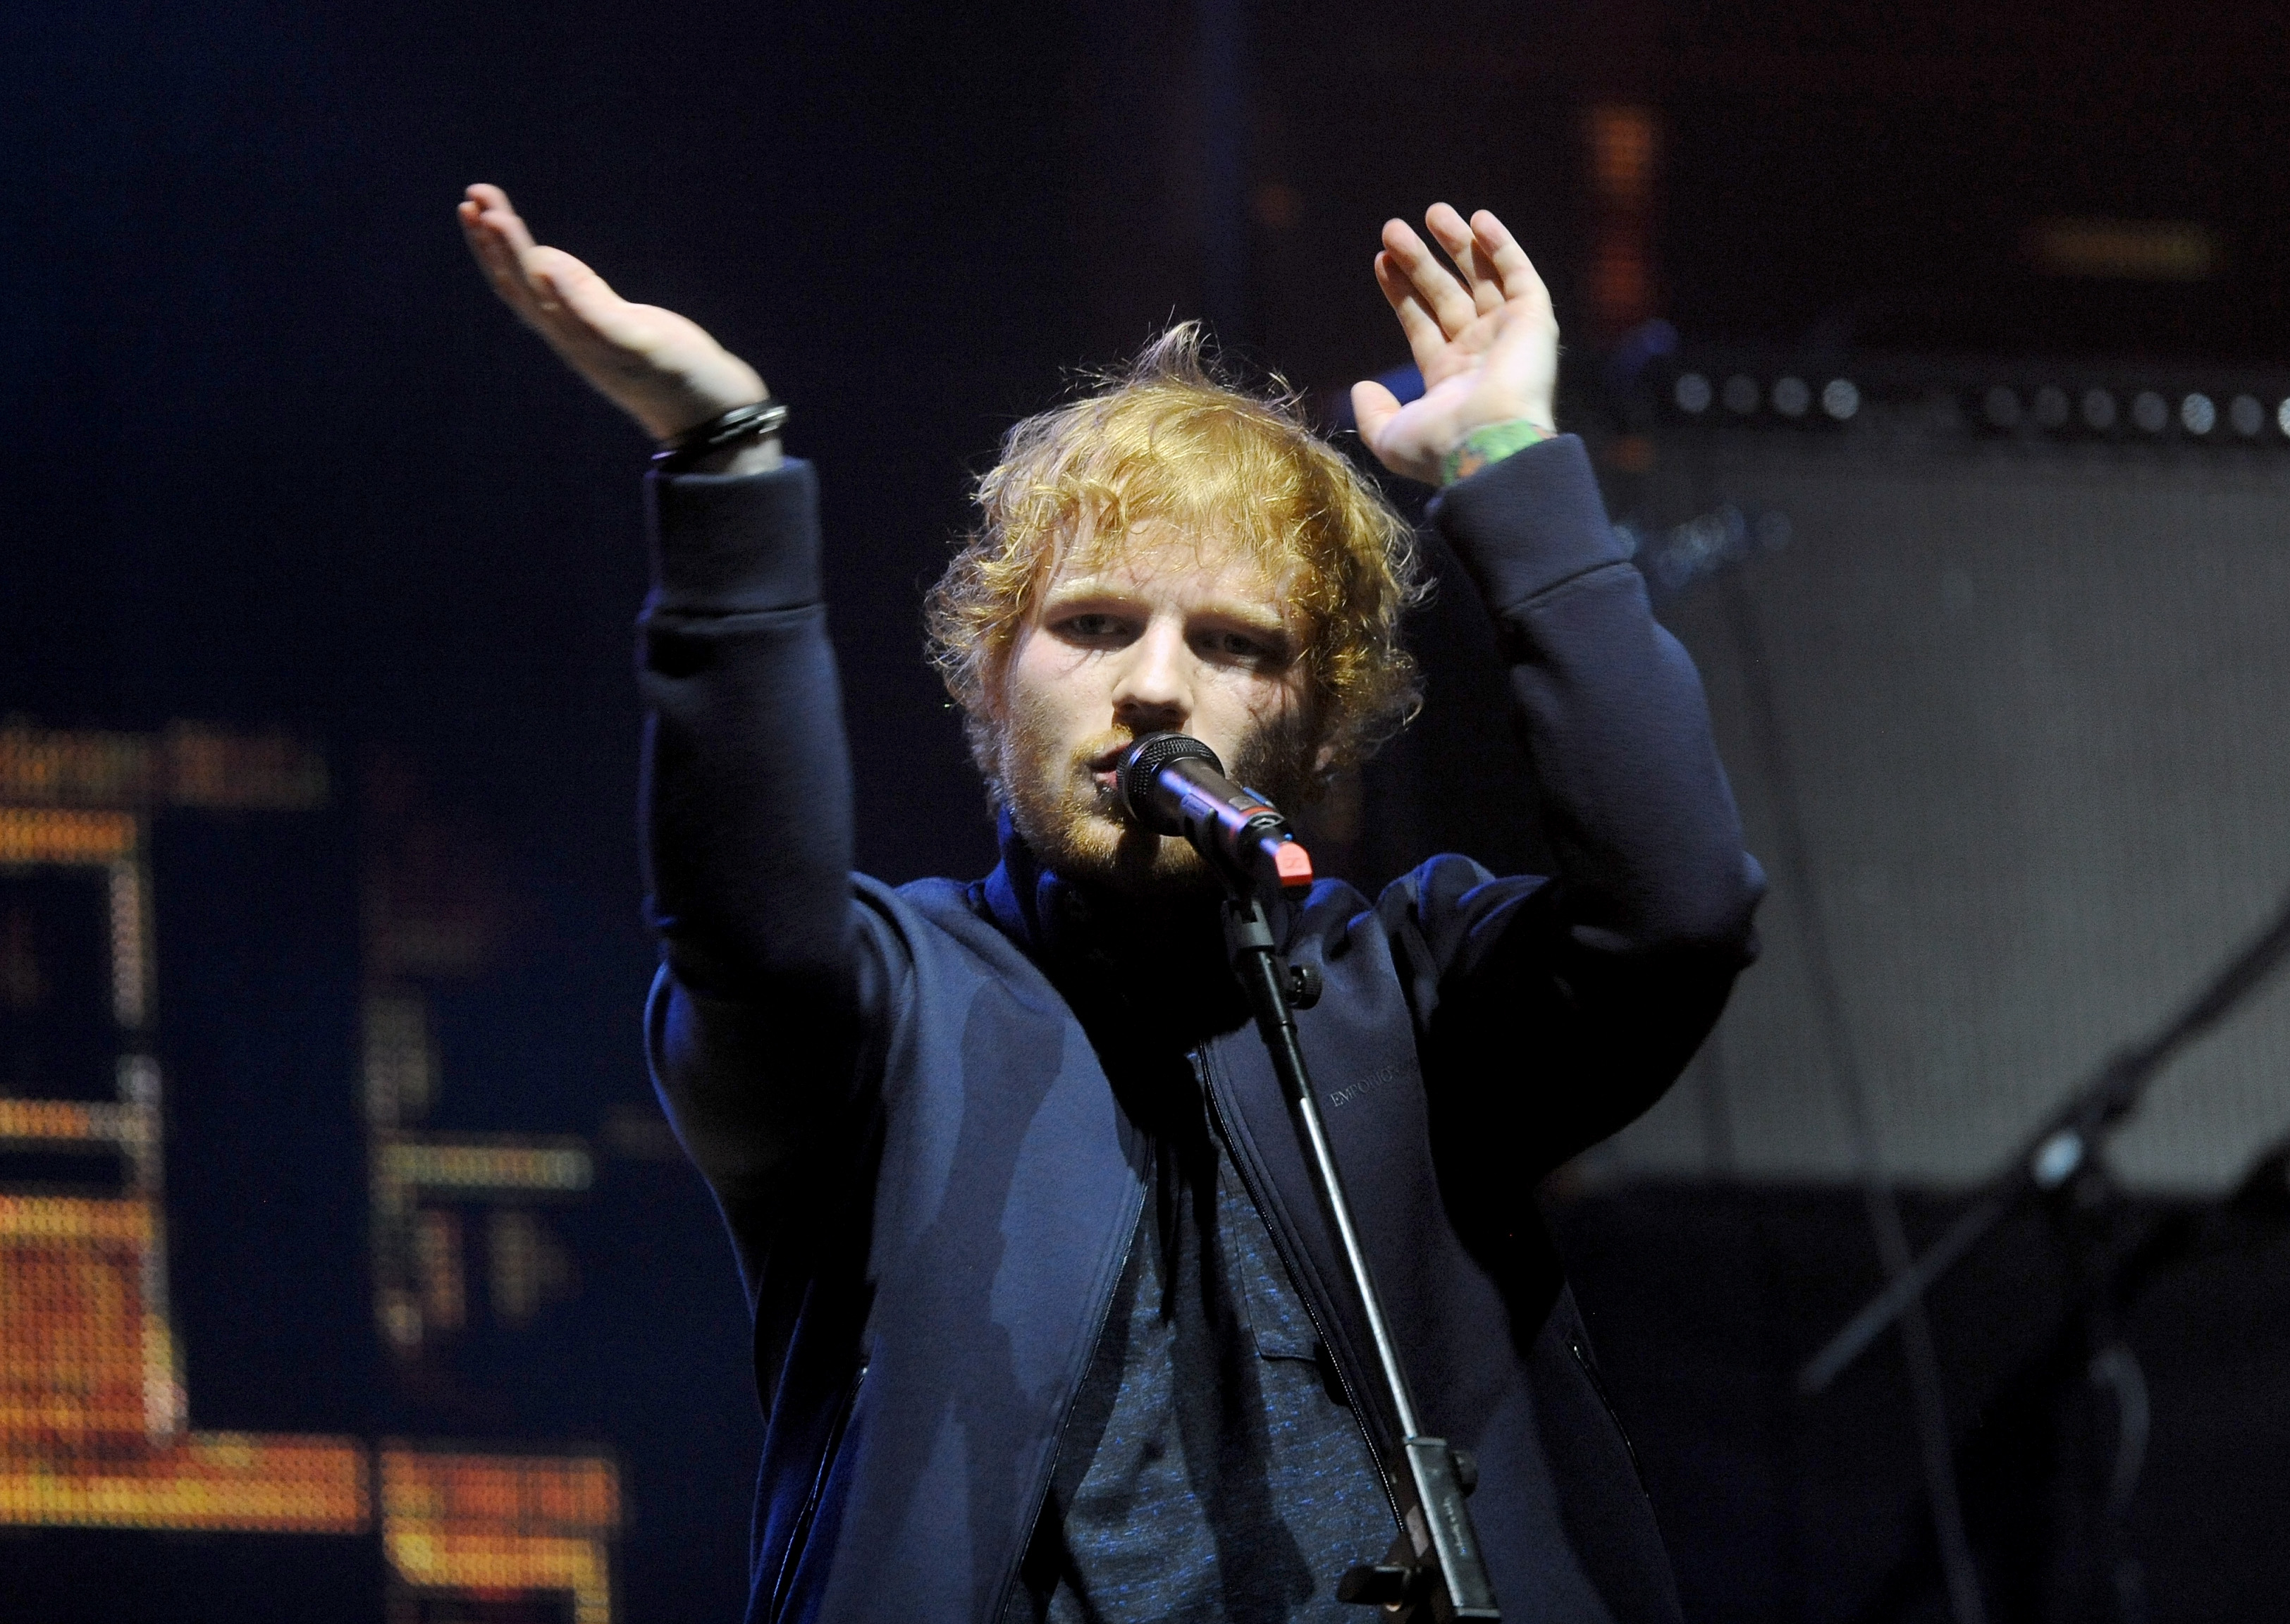 Ed Sheeran Sued for Allegedly Copying Marvin Gaye's 'Let's Get It On'